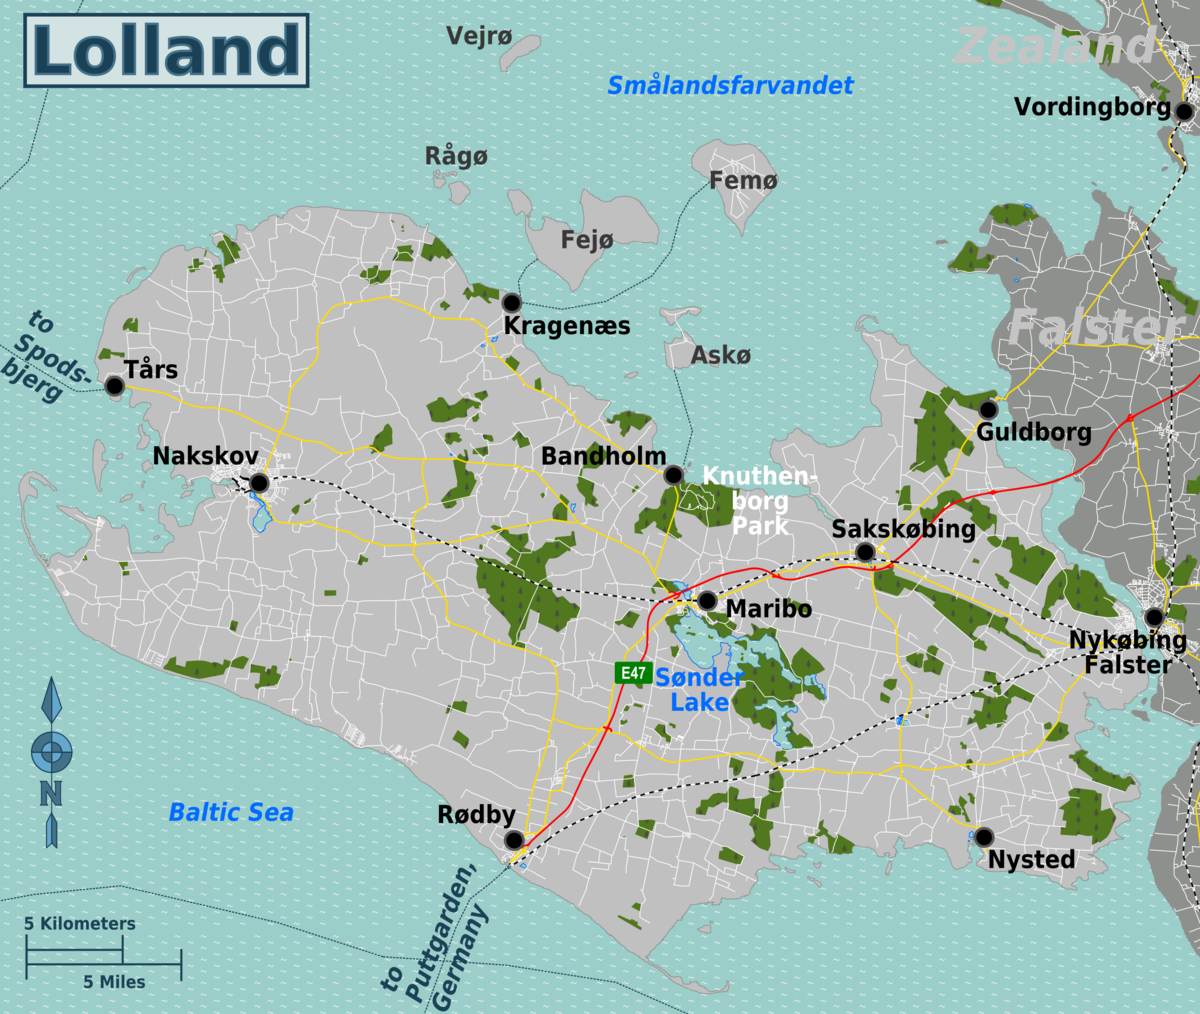 Lolland Travel Guide At Wikivoyage